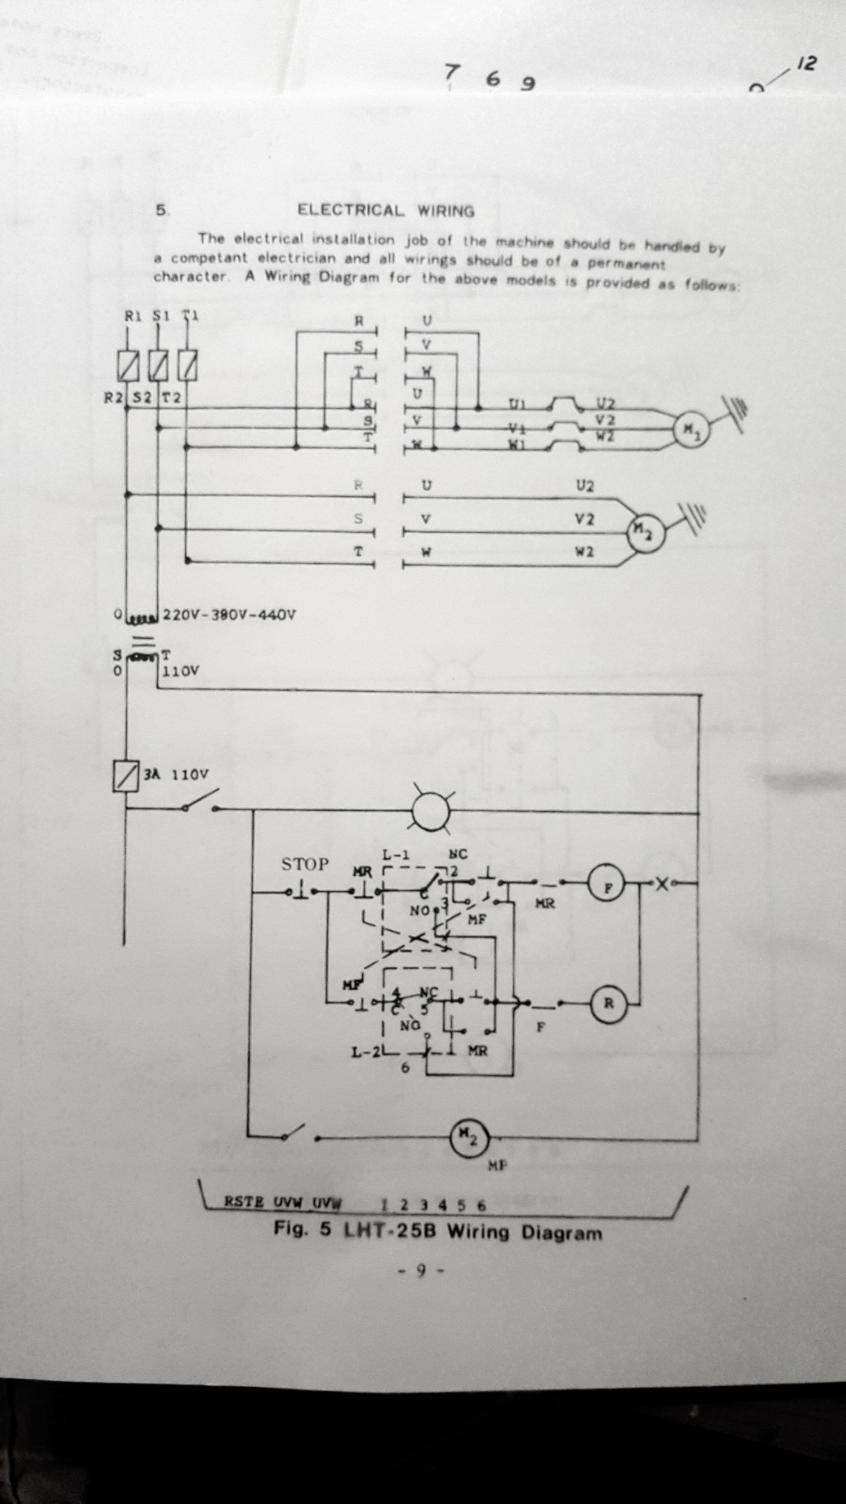 Snap Vfd Pump Wiring Schematic 25 Diagram Images Lathe 24 Diagrams Crackthecodeco